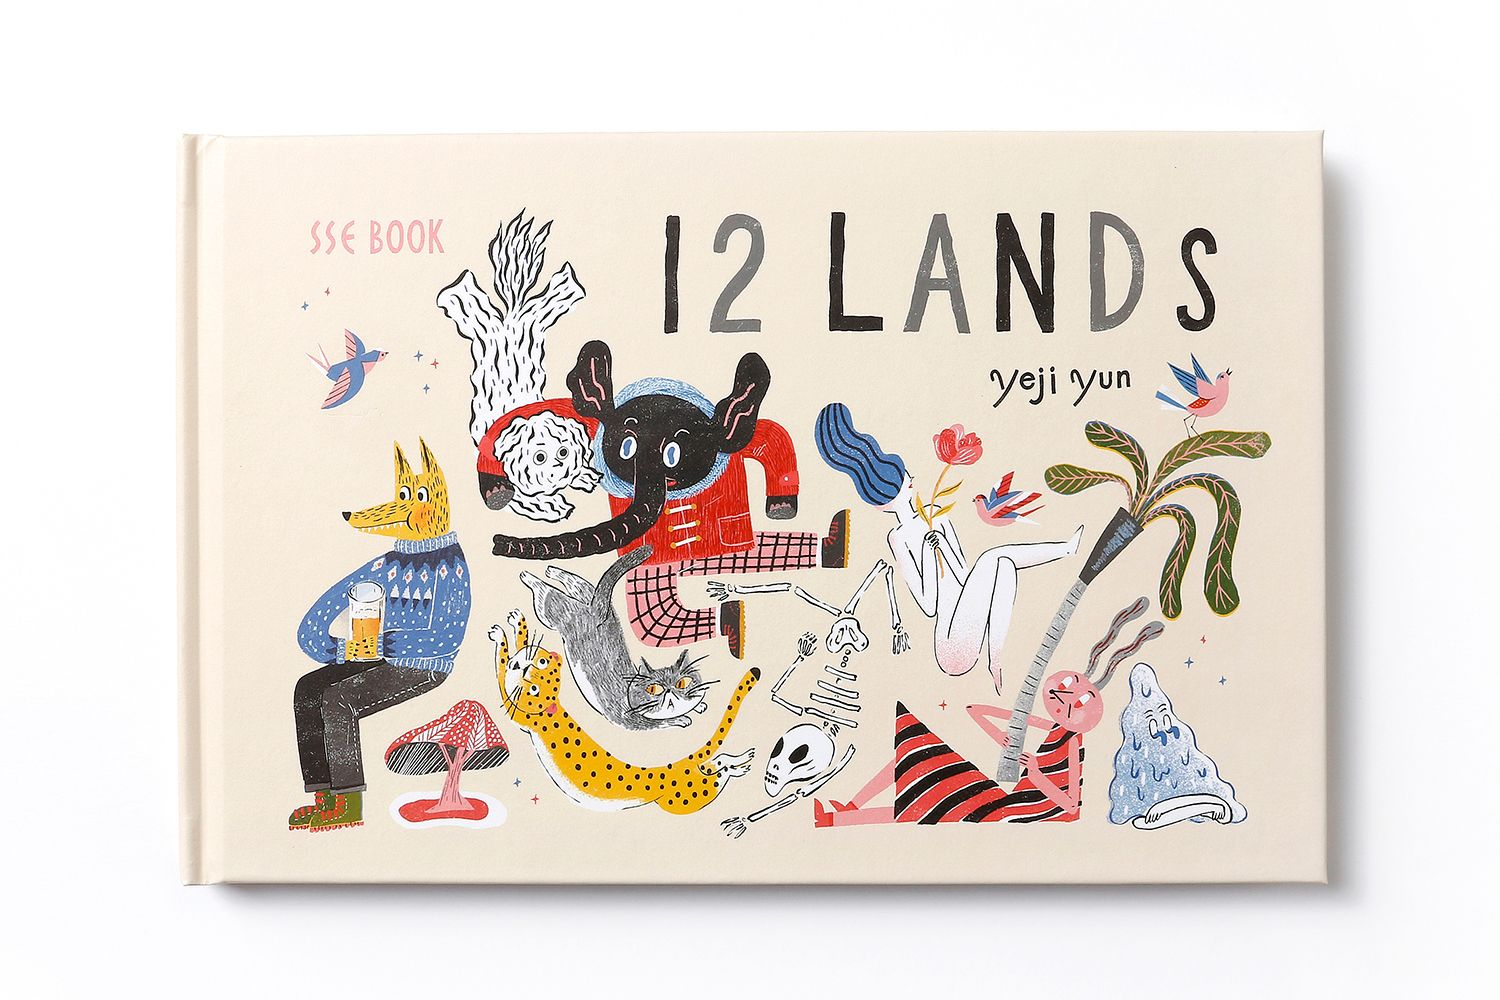 12 Lands is a new picture book by Yeji Yun and published by SSE project in 2015. This series of illustrations won the 2014 YCN Professional awards in UK.